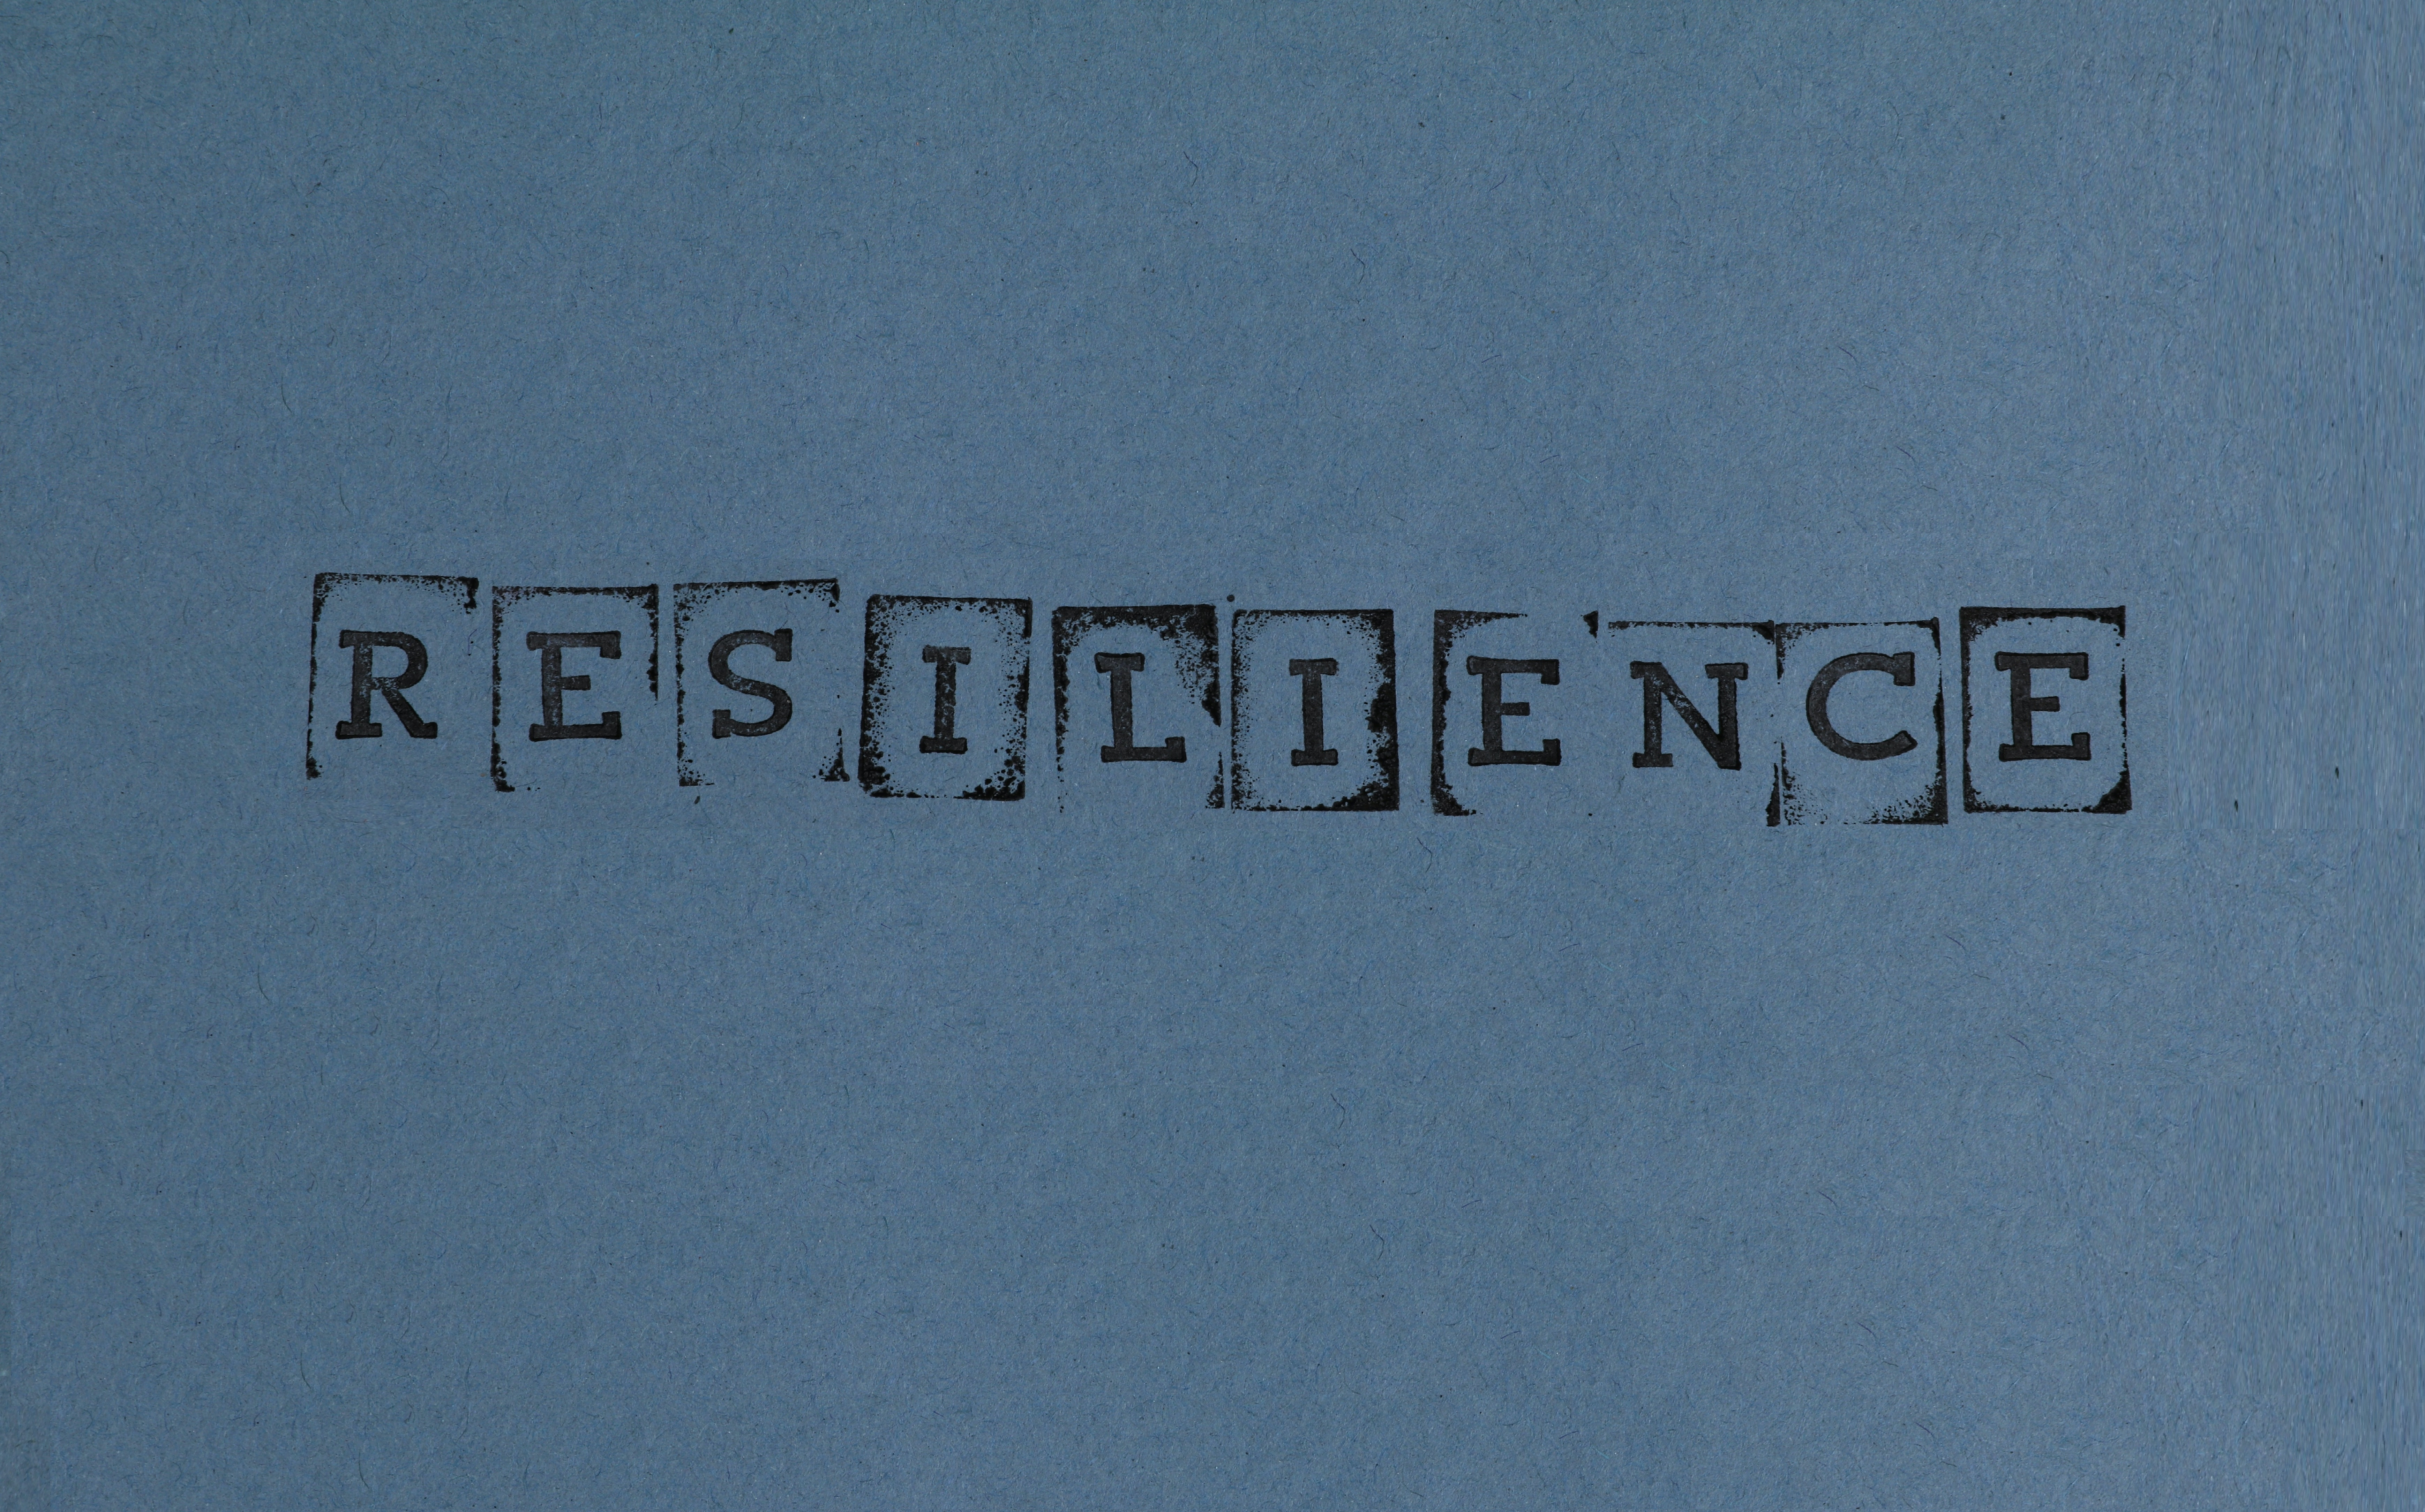 The word resilience is stamped on blue paper